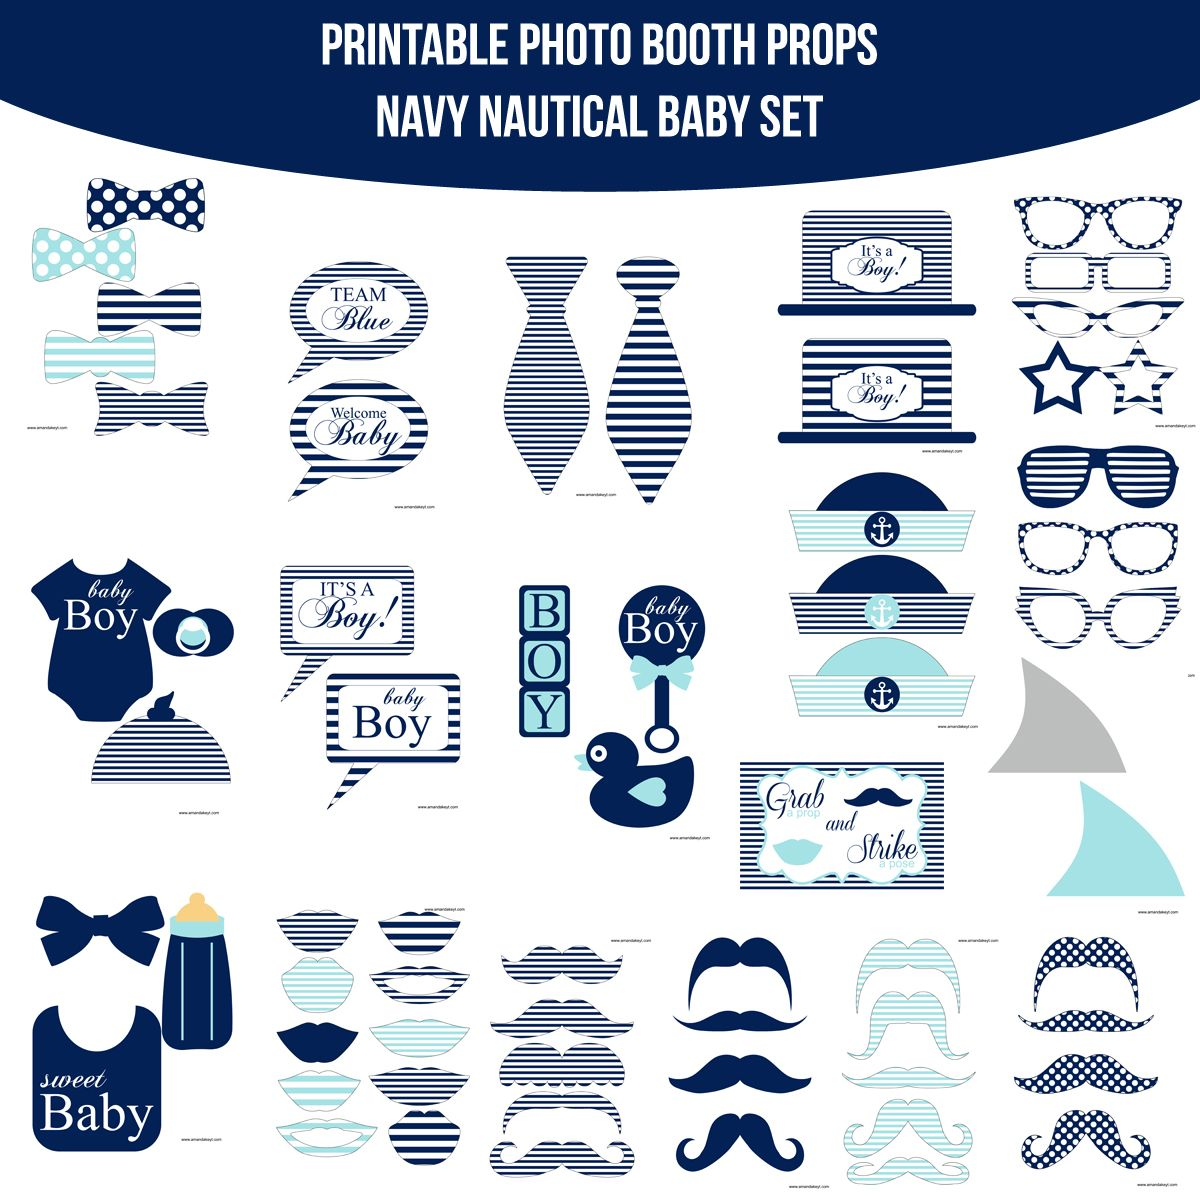 Instant Download Baby Nautical Navy Printable Photo Booth Prop Set